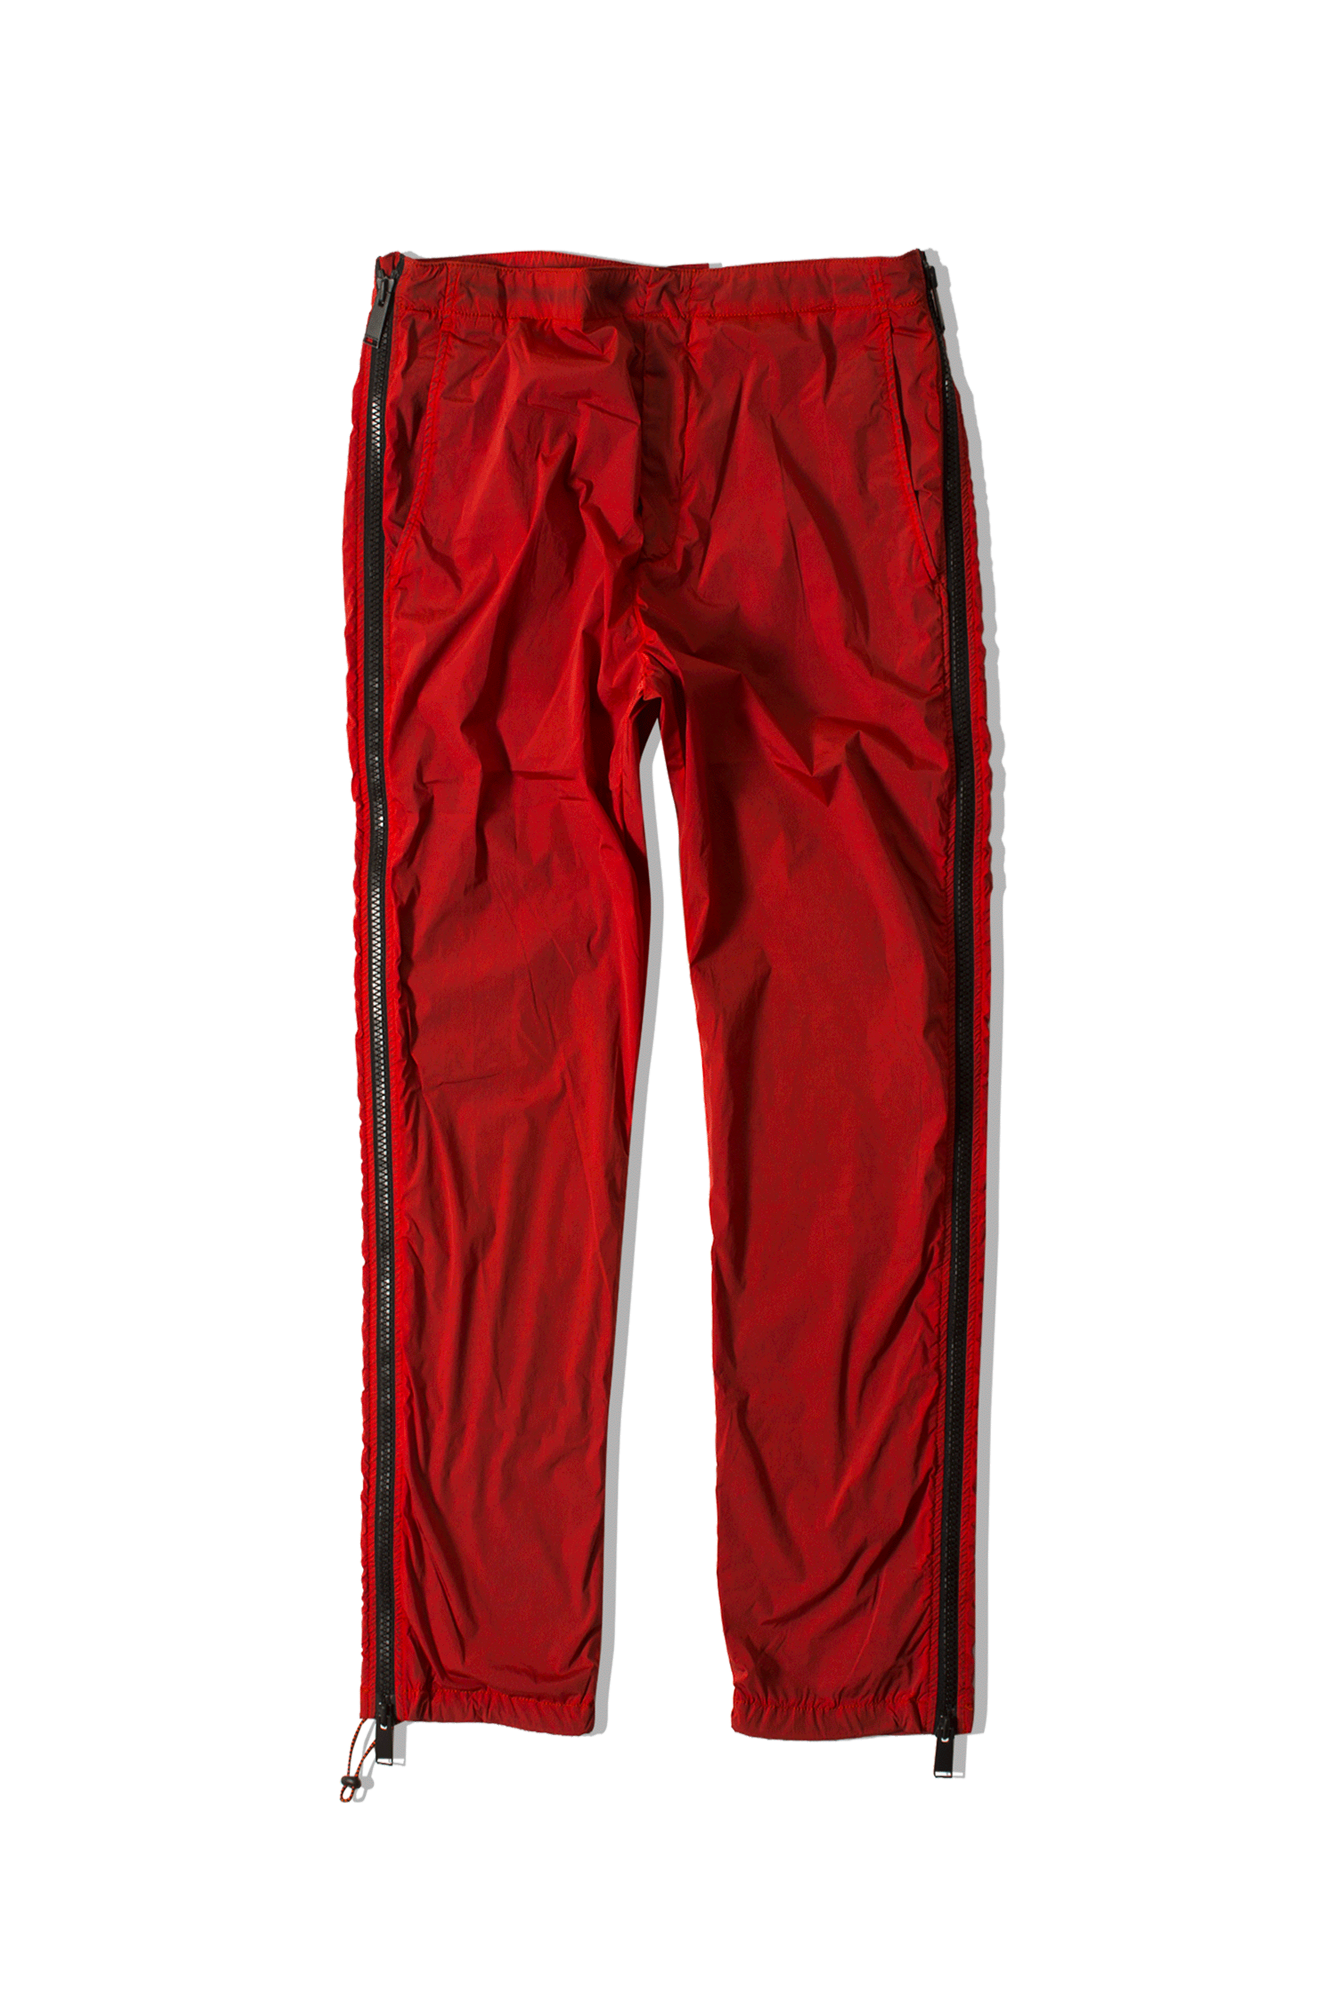 Heron Preston Track pants Side Zip Track Pants Red HMCA017F19#8410252000#2000#S - One Block Down